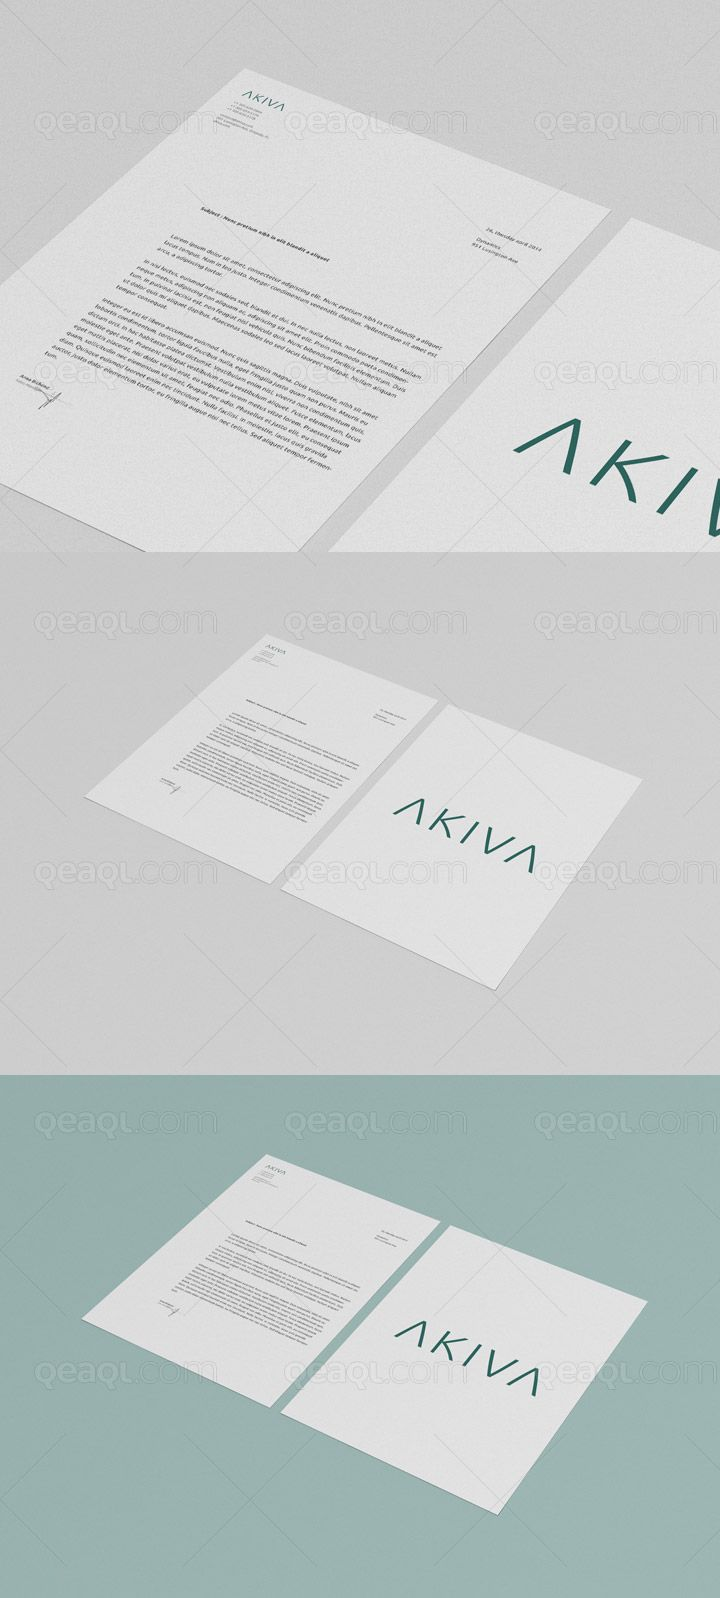 free multipurpose mock up for letterhead flyer and poster the background color is customisable by using smart objects you can change the design very